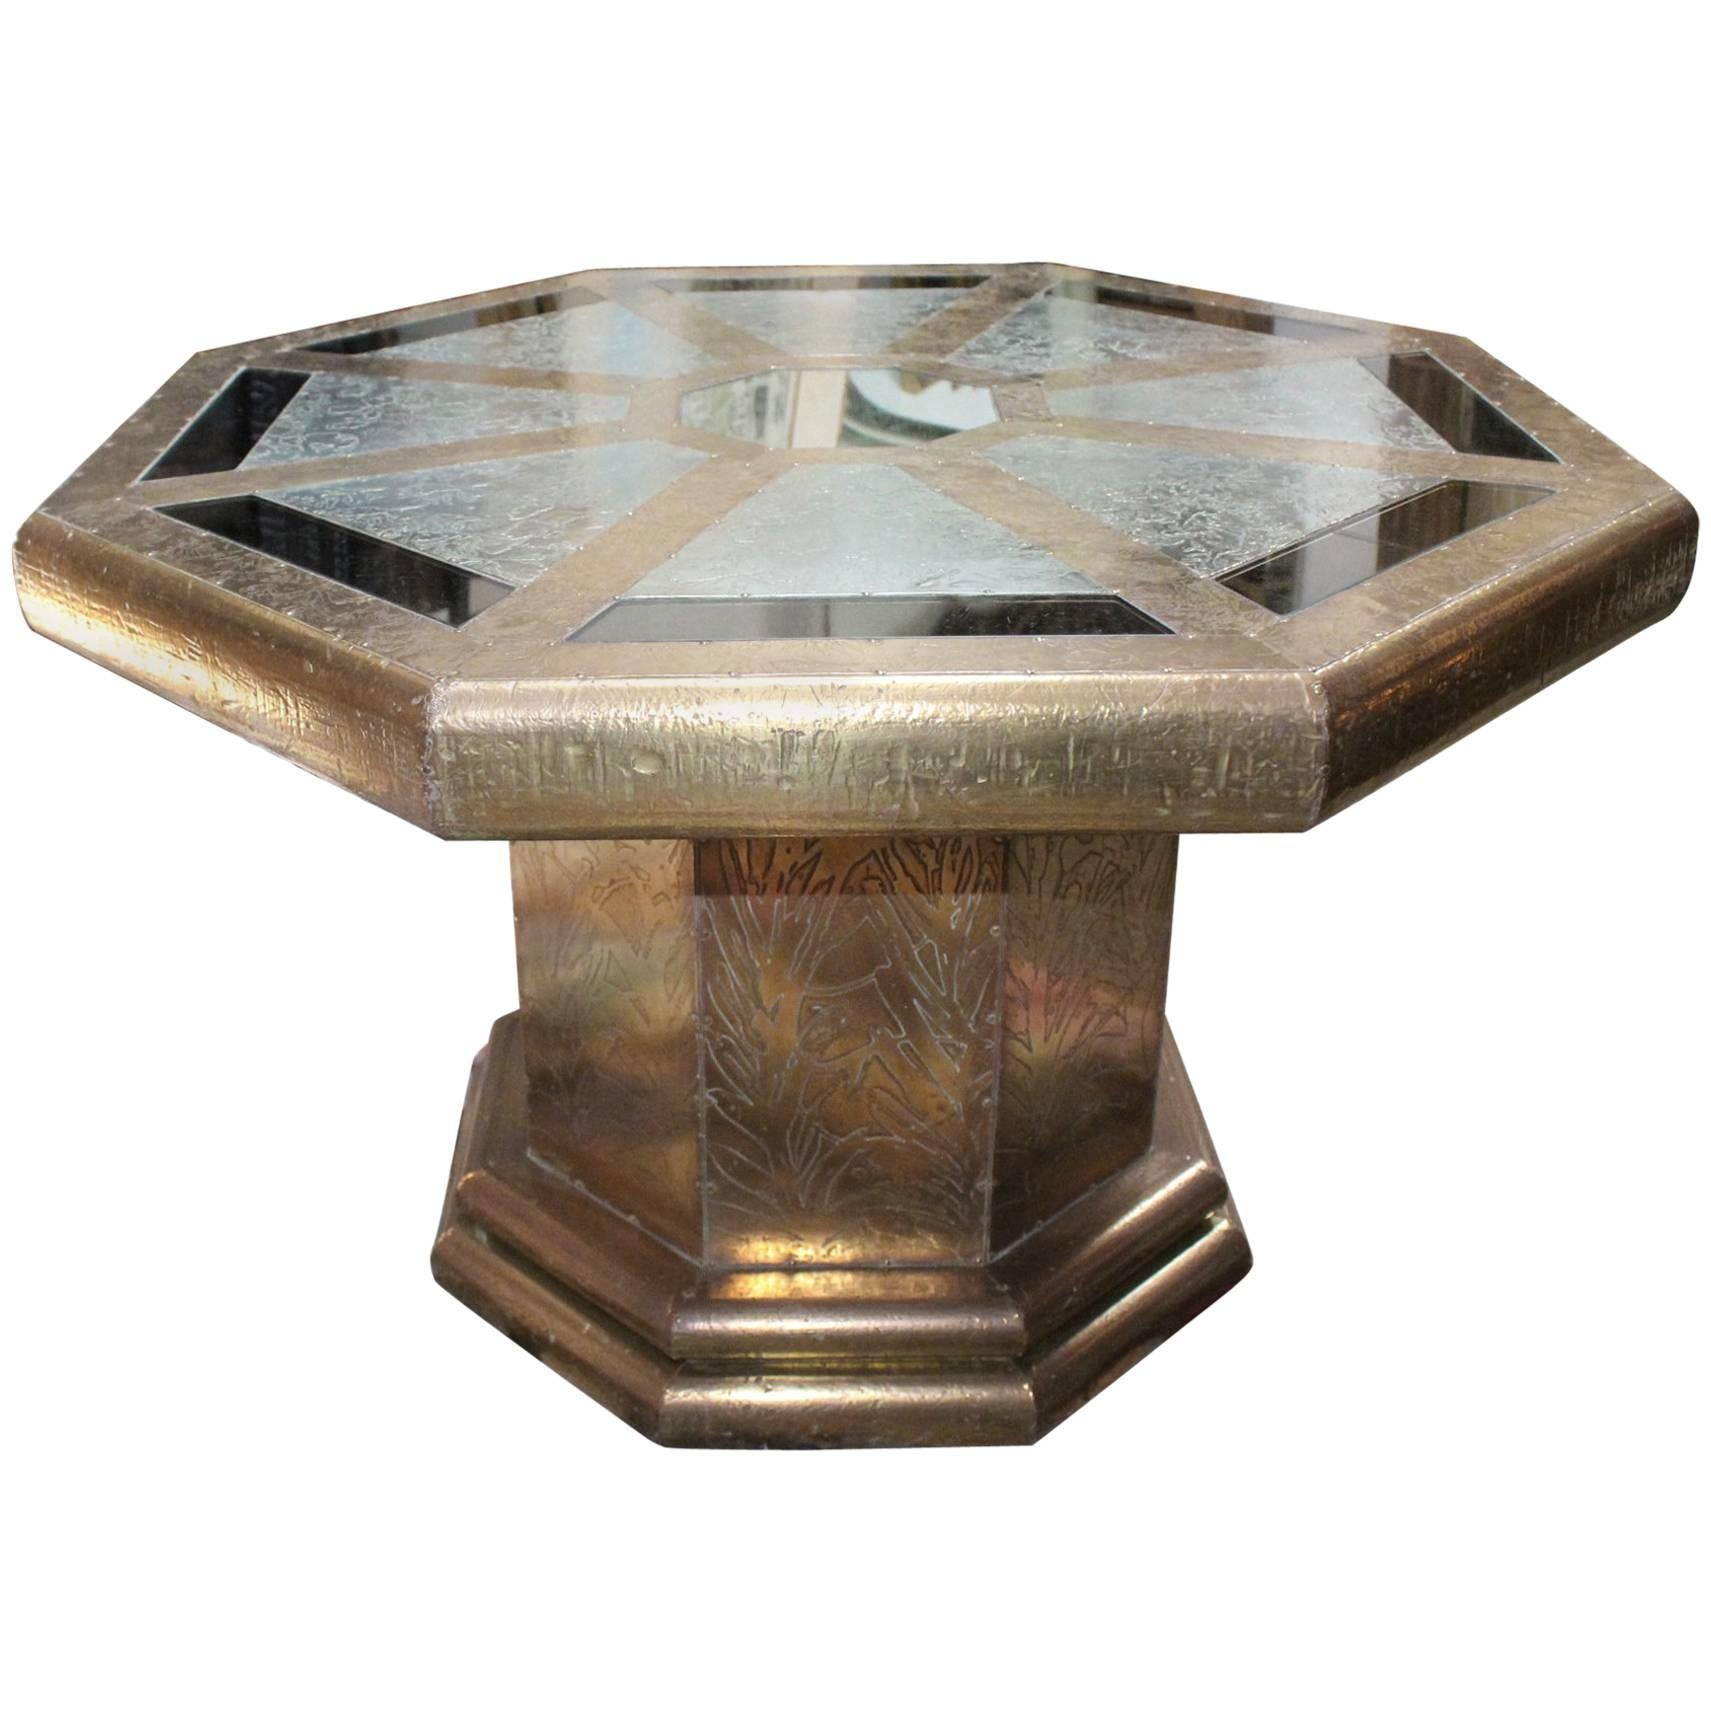 Rodolfo Dubarry's 1970s Spanish Gilded Brass Octagonal Coffee Table with Mirrors